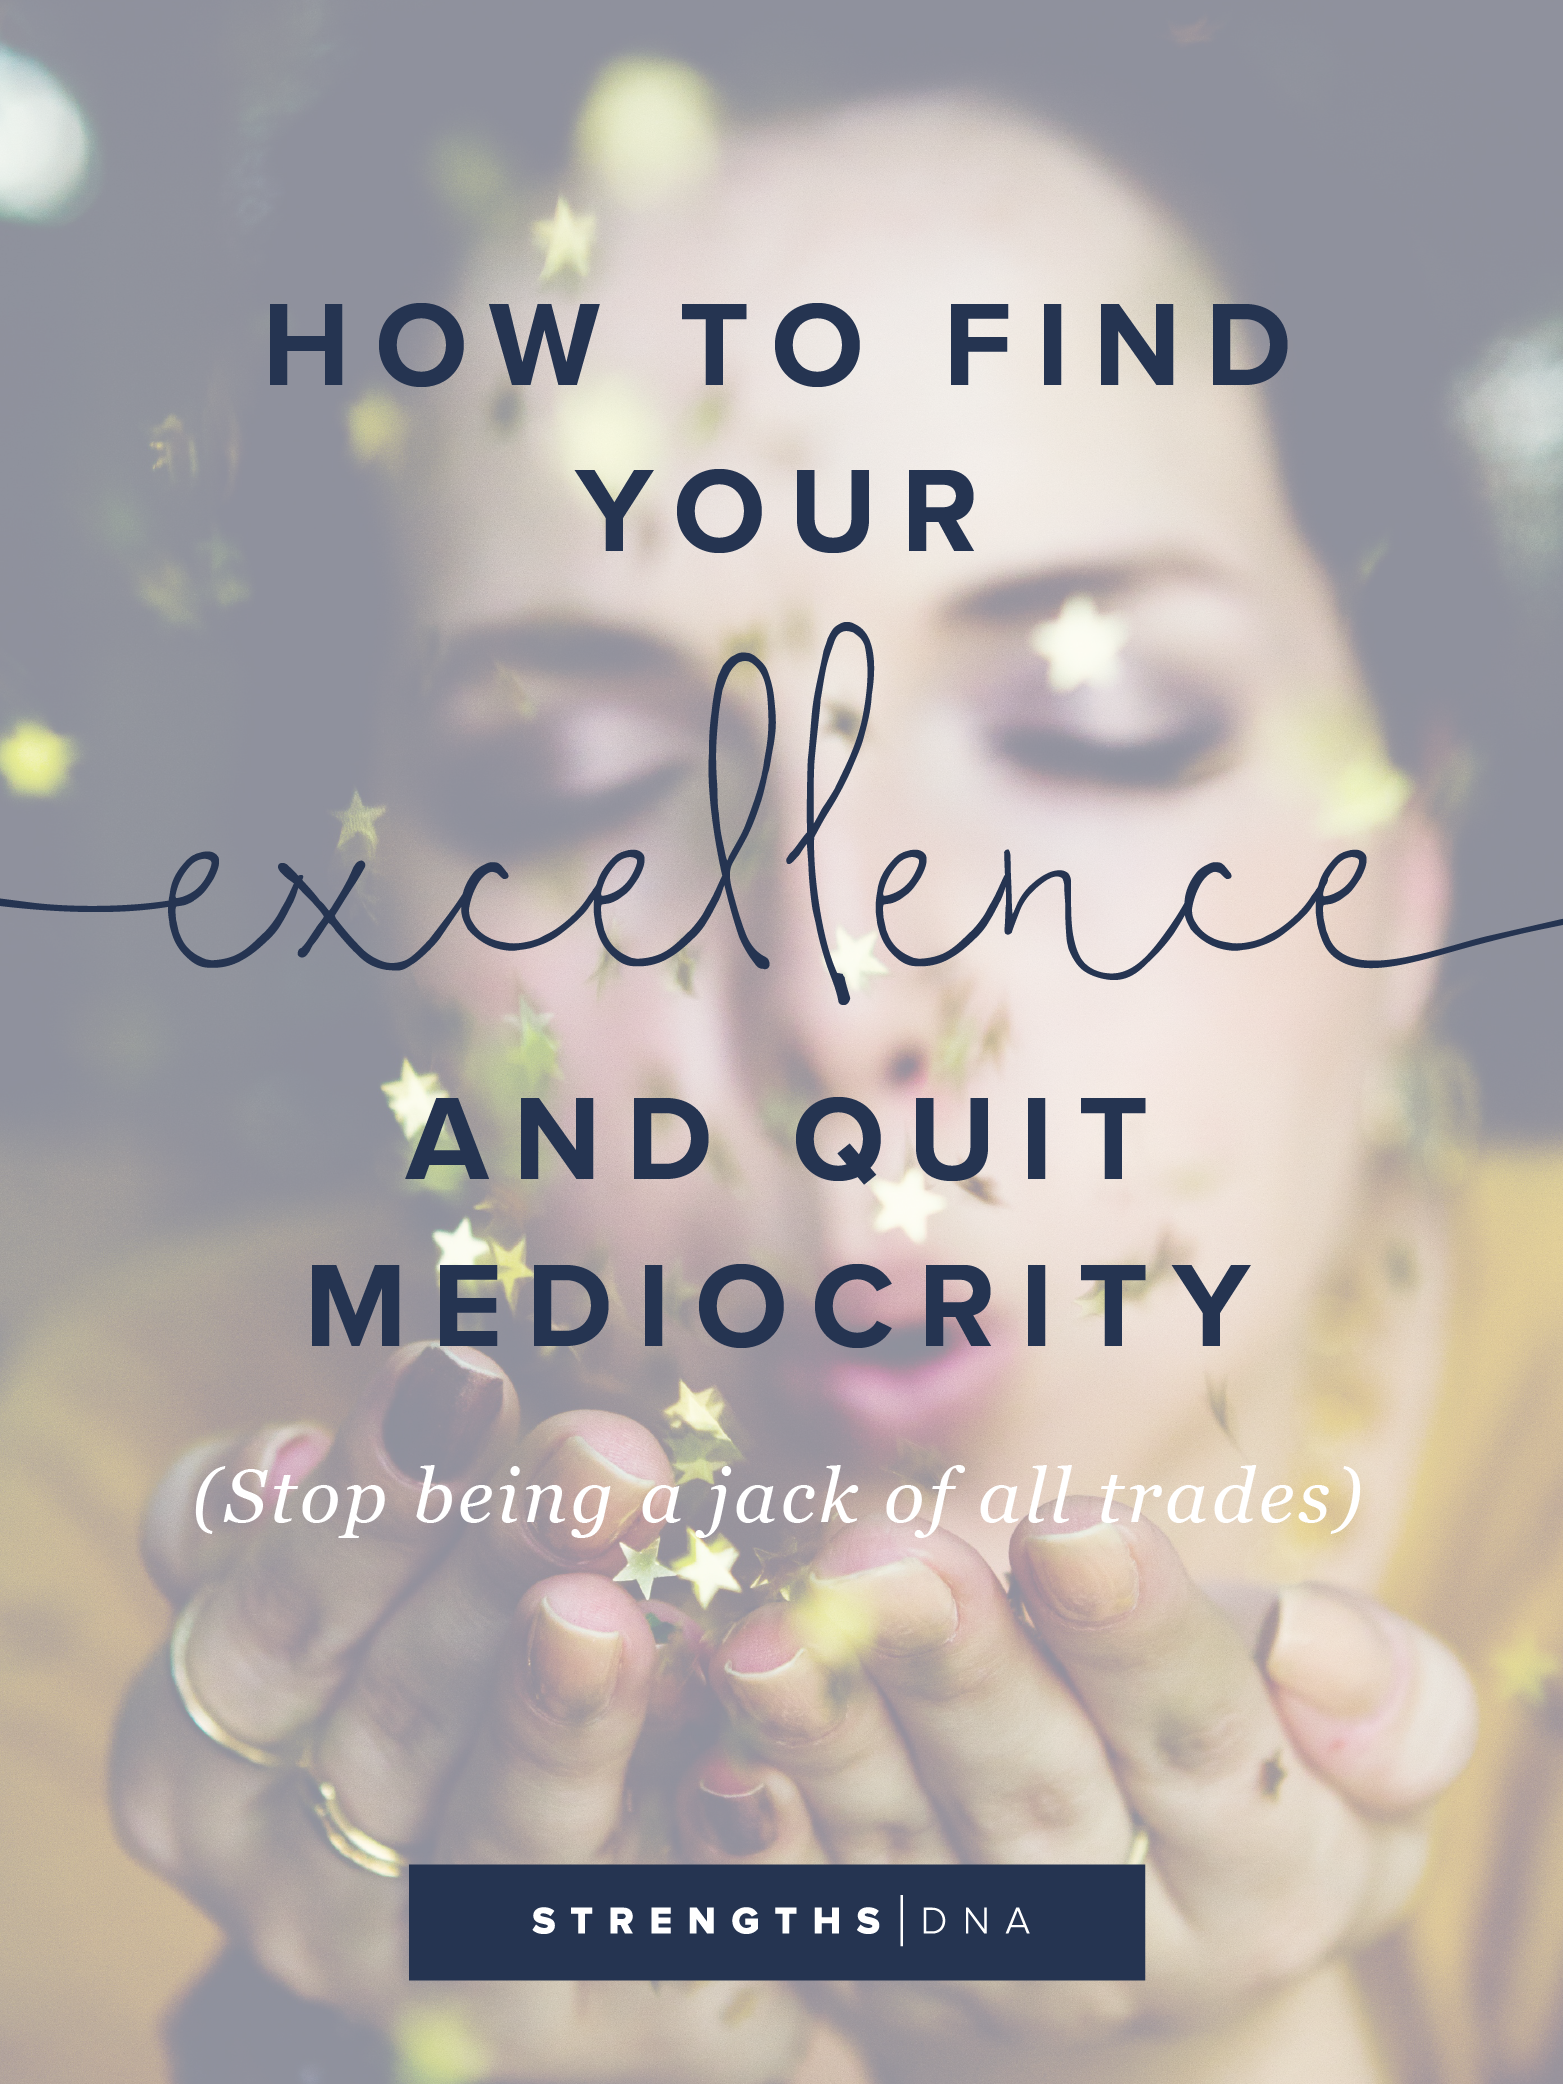 How to Find Your Excellence and Quit Mediocrity